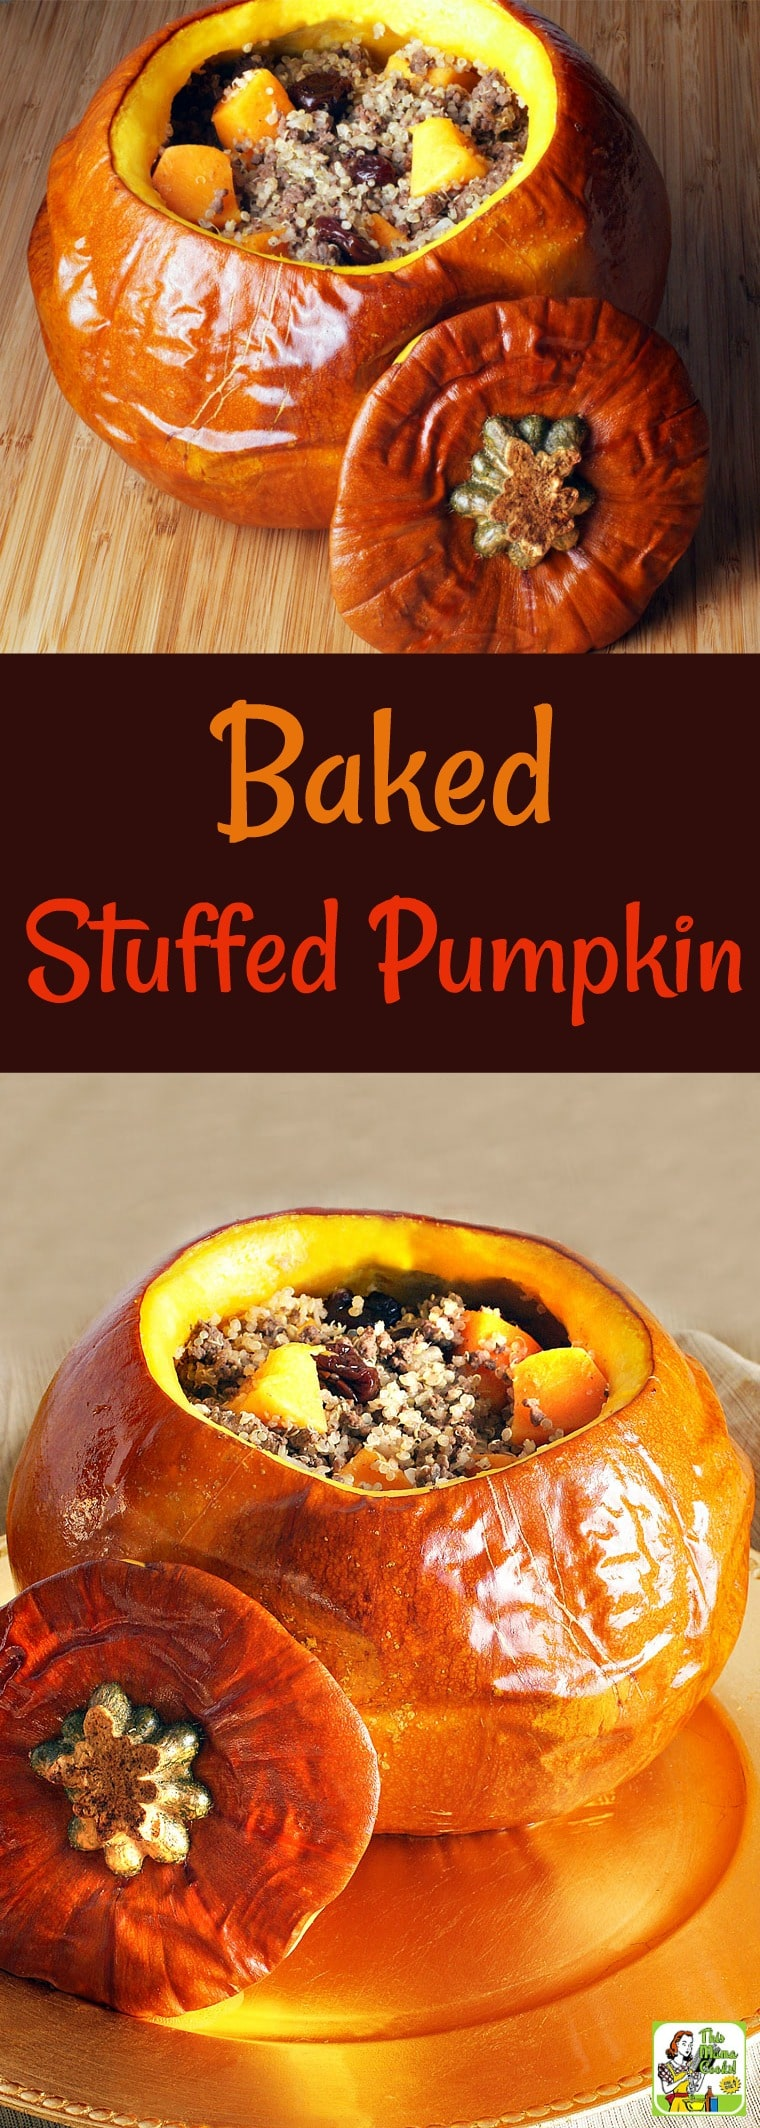 This Baked Stuffed Pumpkin recipe uses ground venison, quinoa, dried cherries, and butternut squash. This fall and Thanksgiving pumpkin recipe is also gluten-free, healthy and packed with nutrition. A true one pot recipe that is super easy to make, too! #recipe #easy #recipeoftheday #healthyrecipes #glutenfree #easyrecipes #venison #fruit #fall #thanksgiving #halloween #holiday #dinner #healthy #quinoa #pumpkinrecipe #pumpkin #pumpkinrecipe #thanksgiving